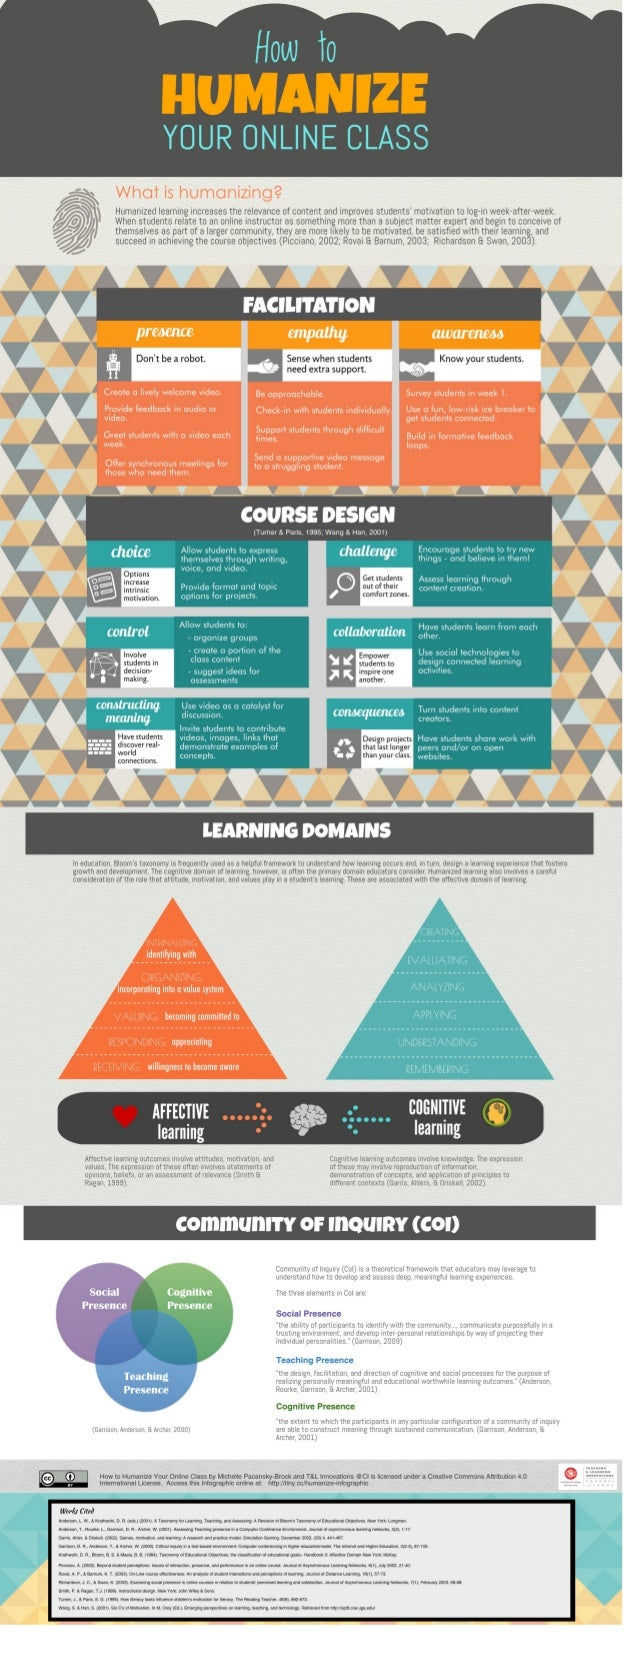 /—  Humanized learning increases the relevance of content and improves students' motivation to log-in week-after-week.  fl ...